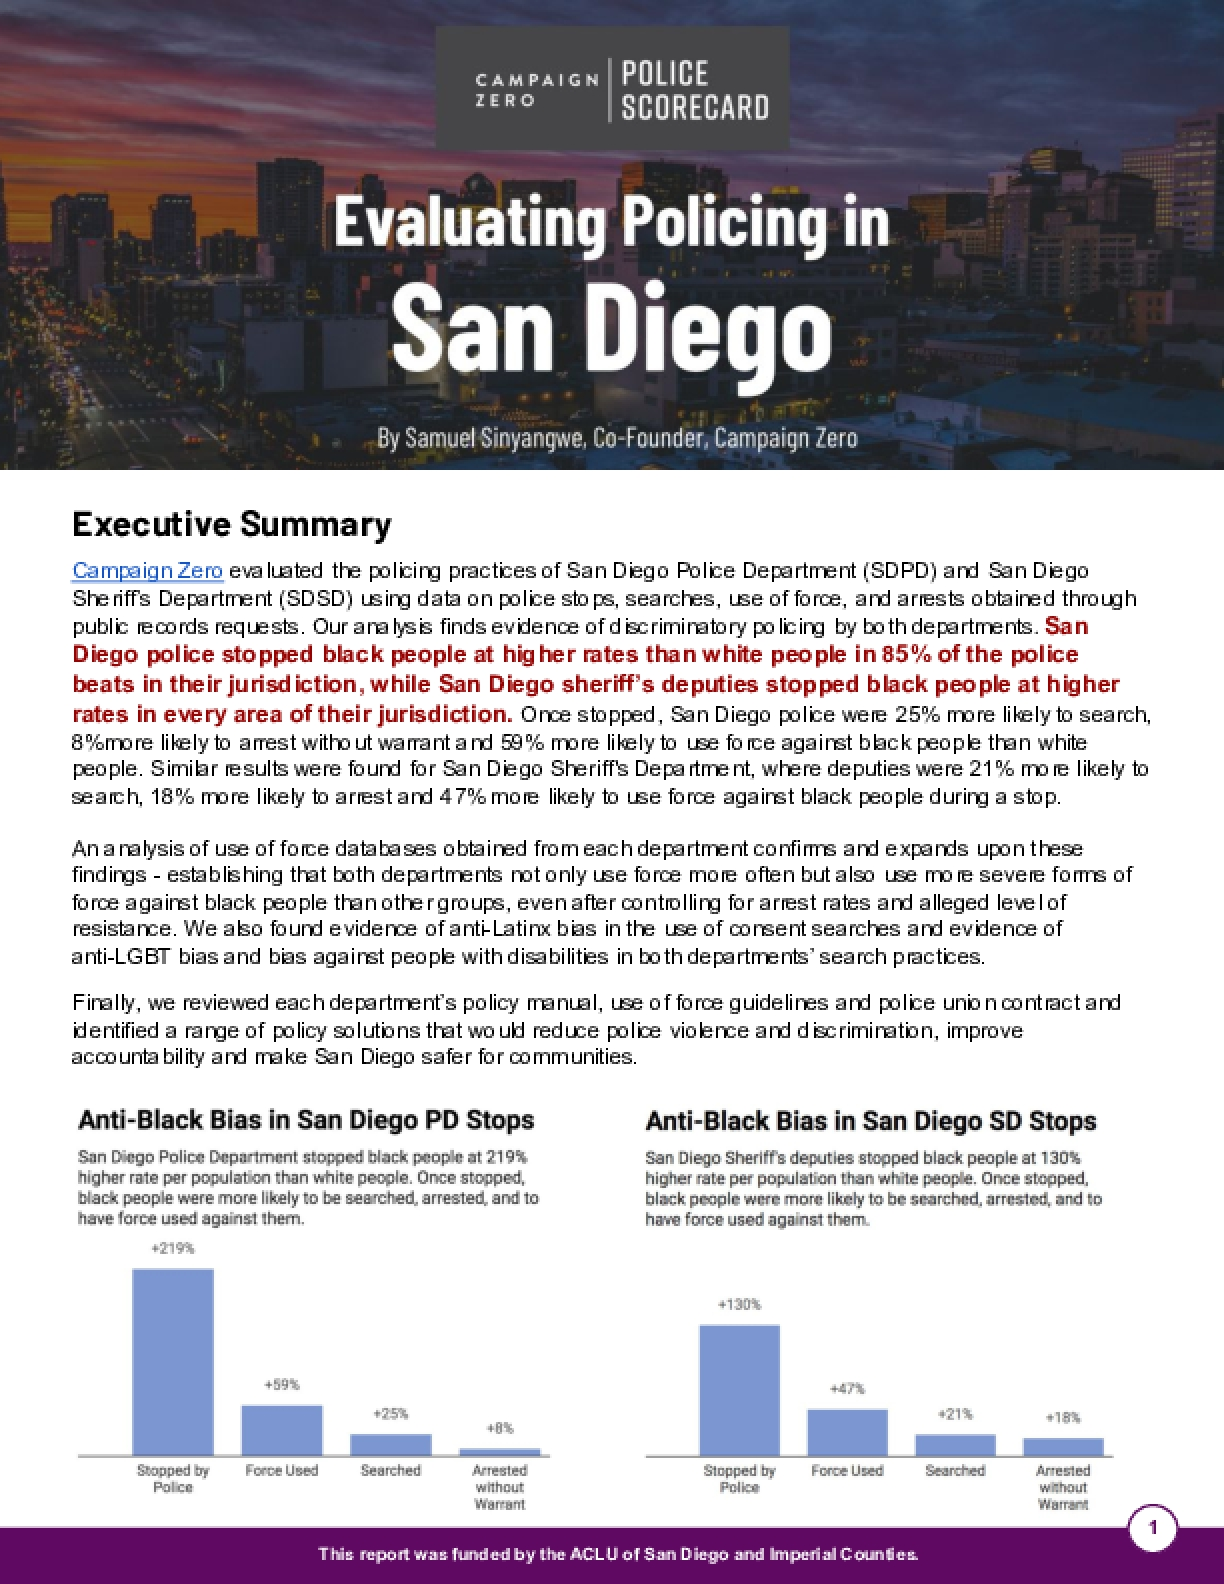 Evaluating Policing in San Diego